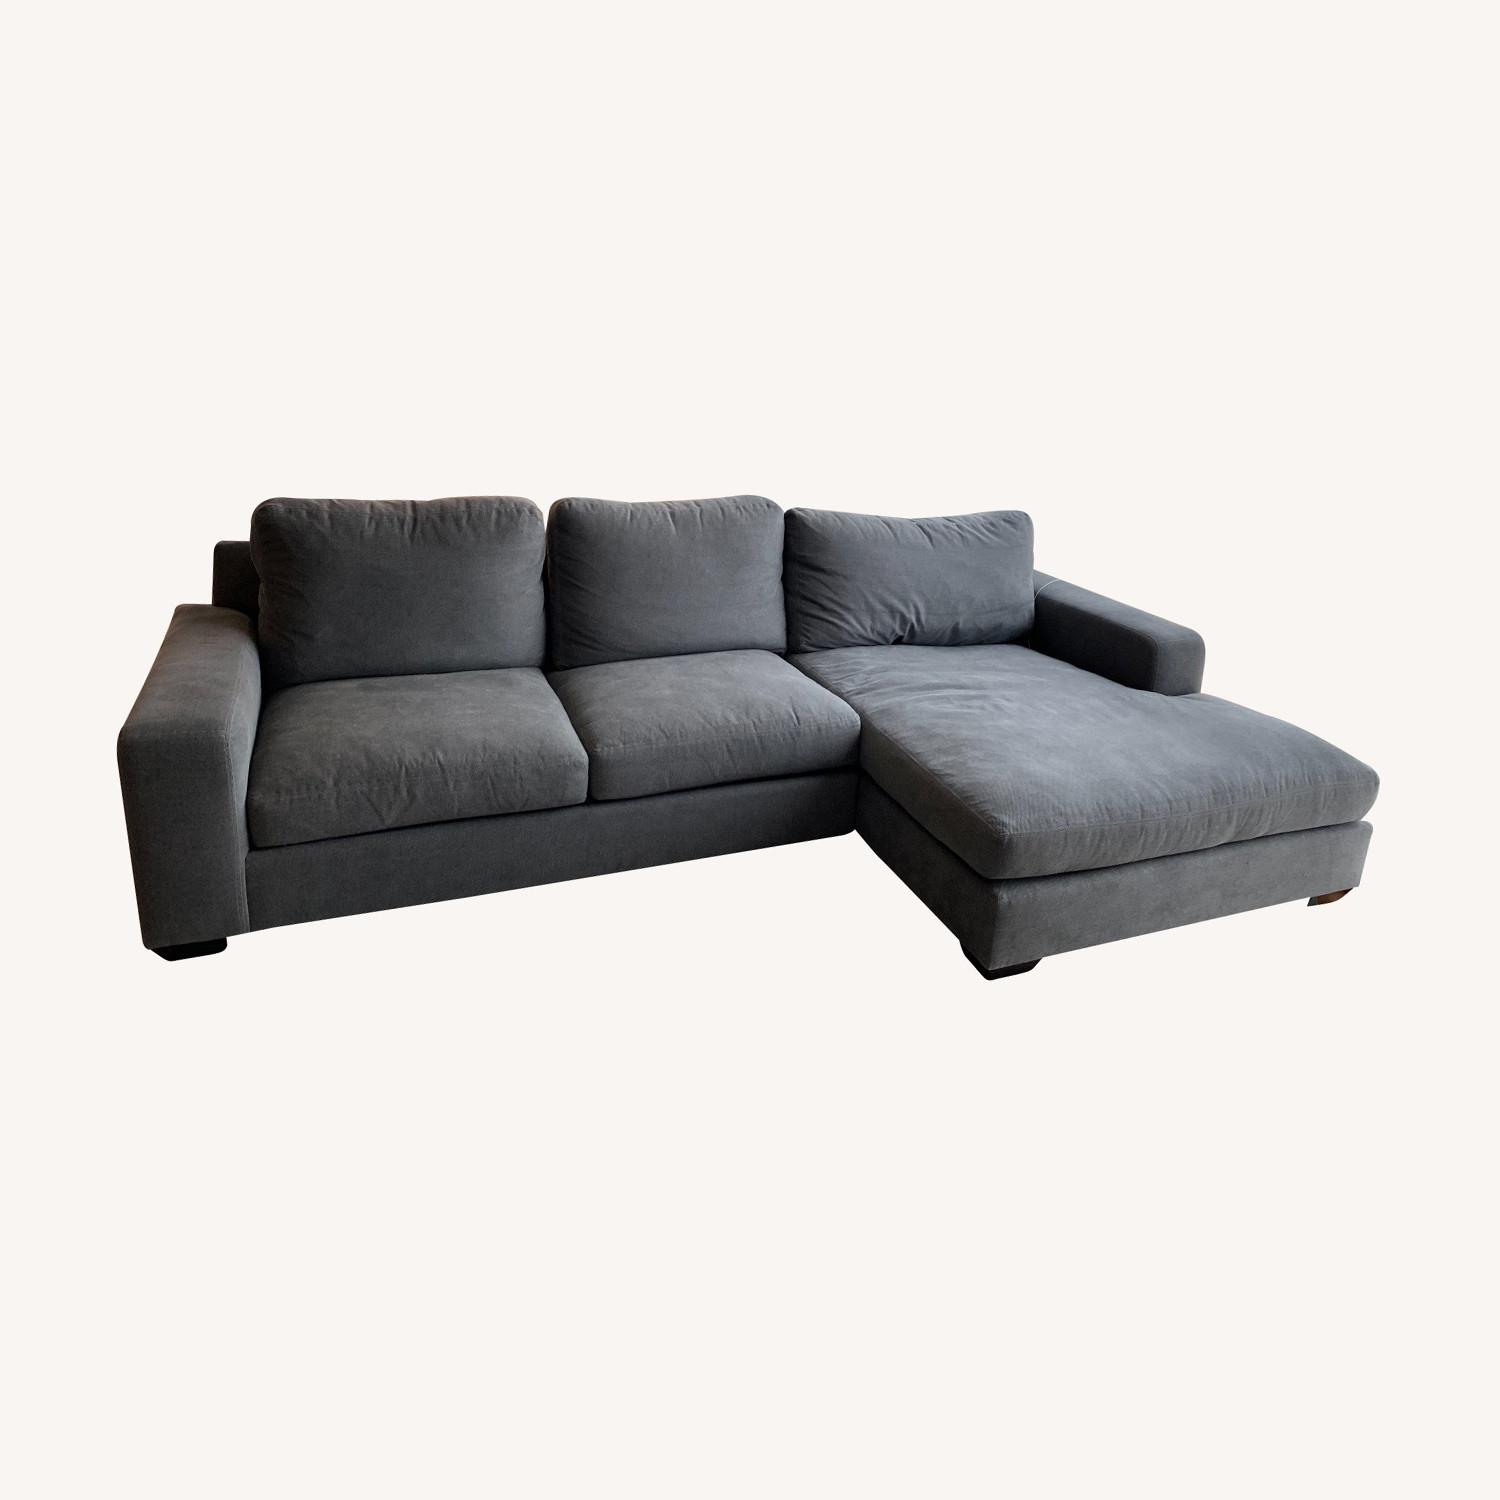 Pottery Barn Custom Couch - image-0